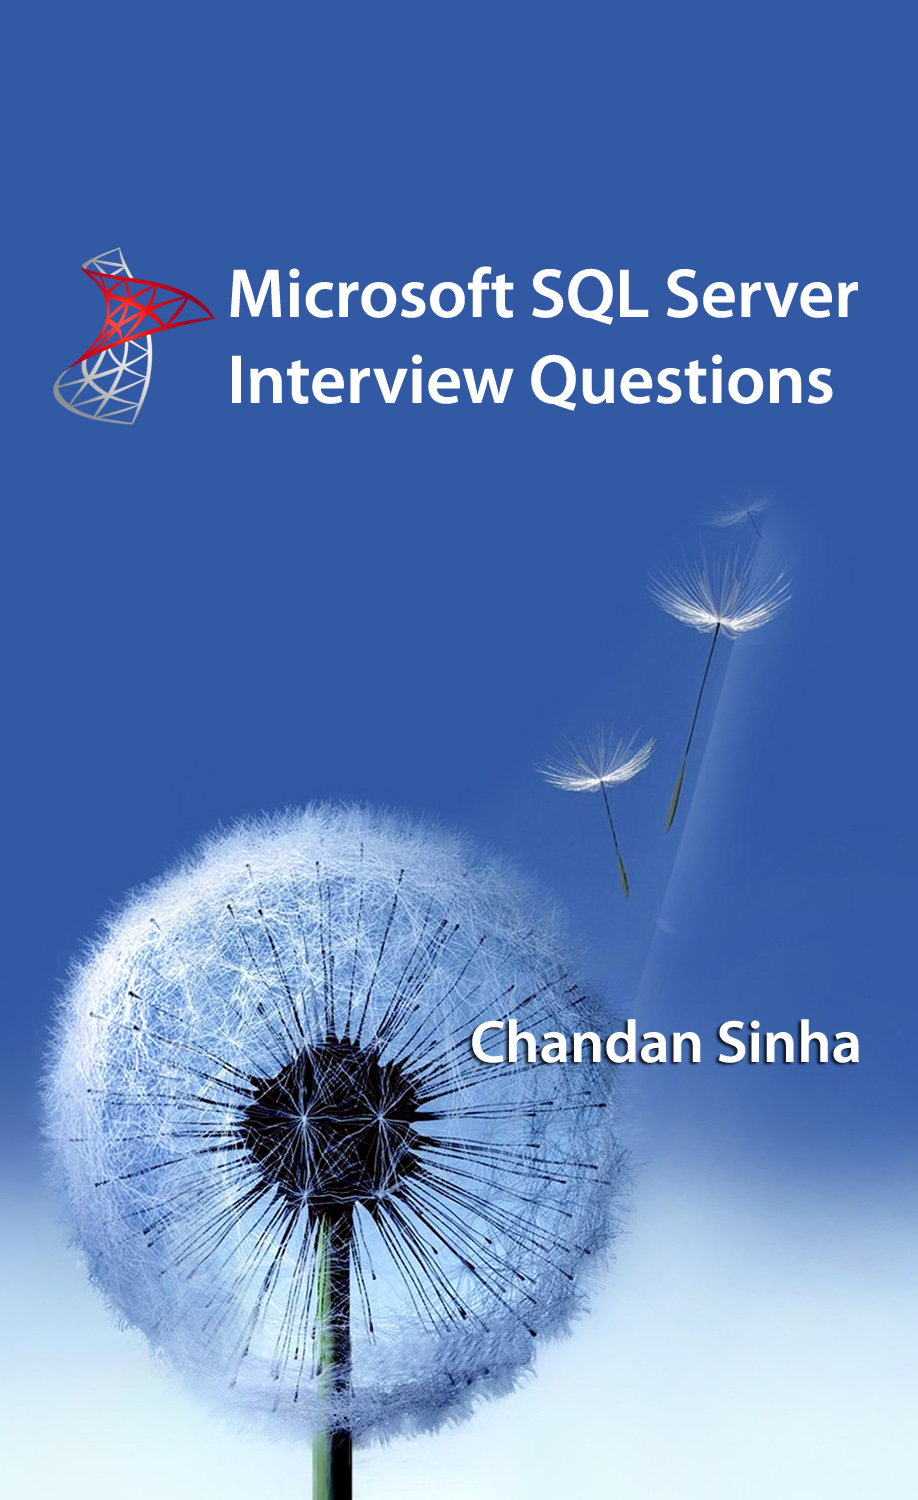 dot net interview cracker a comprehensive list of dot net it will serve as a useful resource to anyone who faces interviews in sql developers of any platform java c etc as well as database administrators